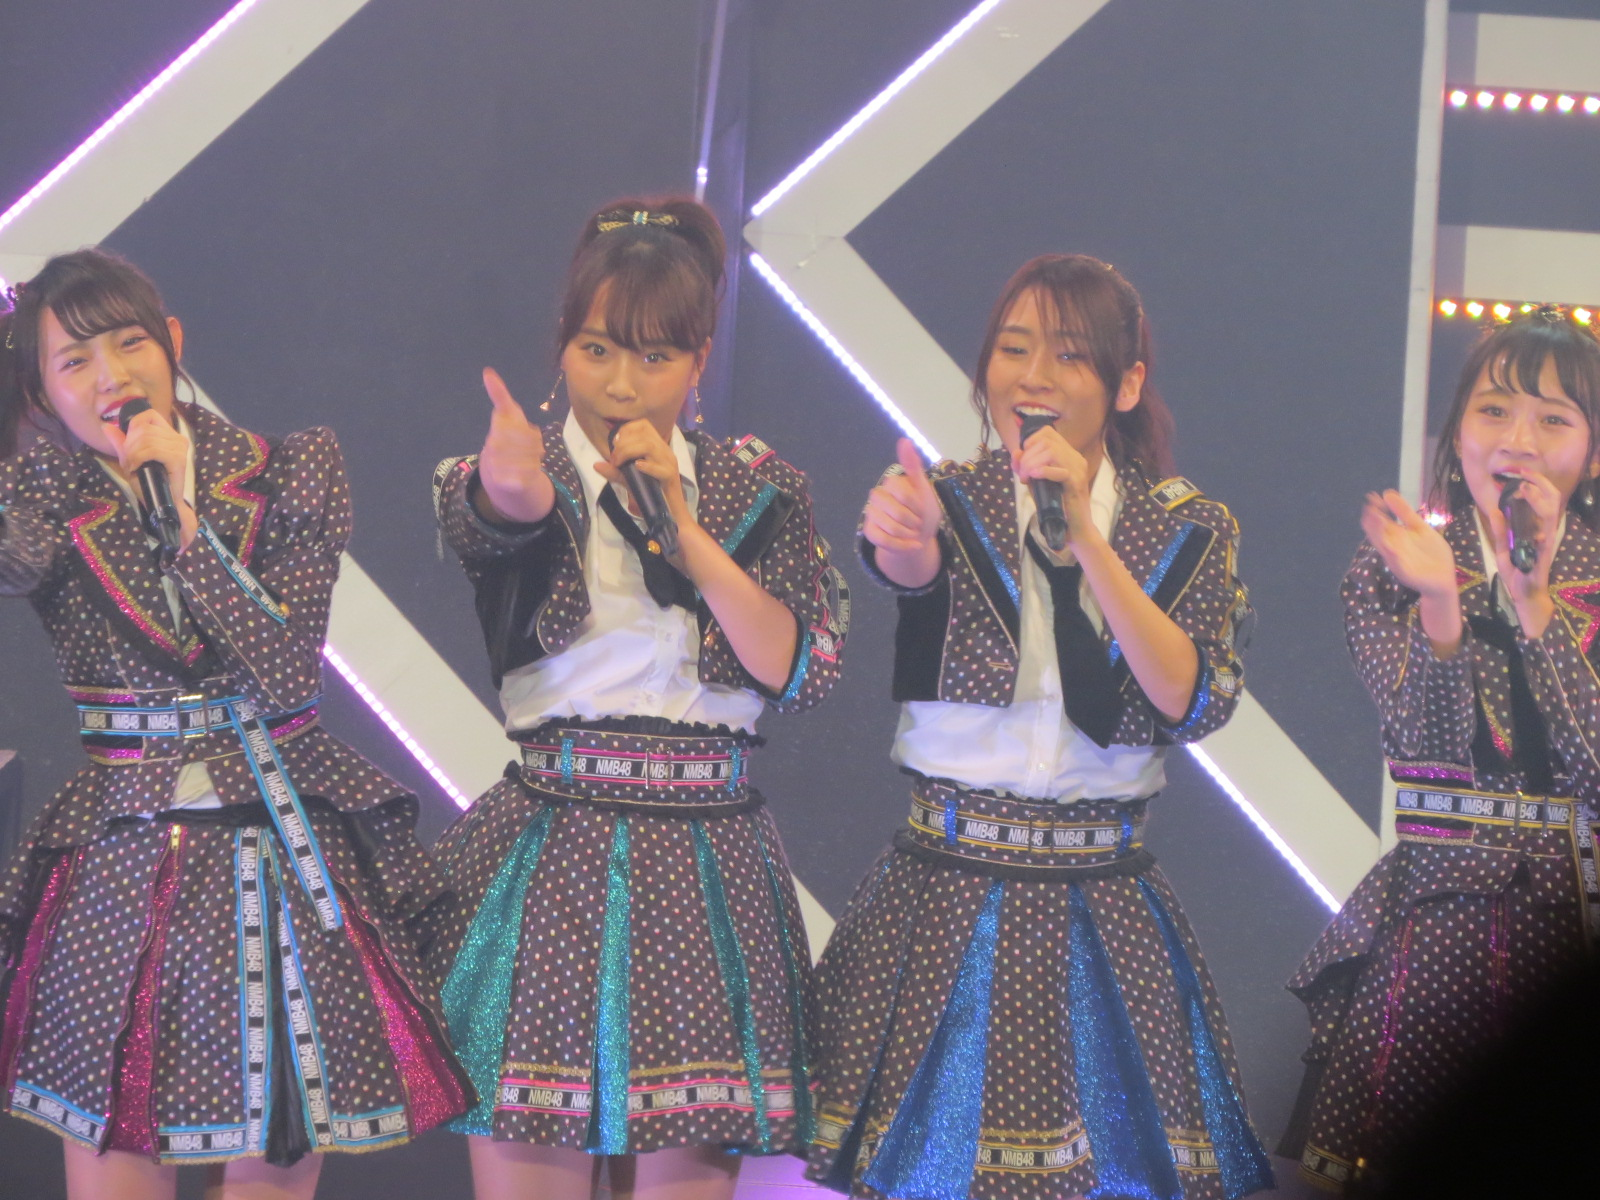 NMB48 LIVE TOUR 2018 in Summer・石川公演の画像-014